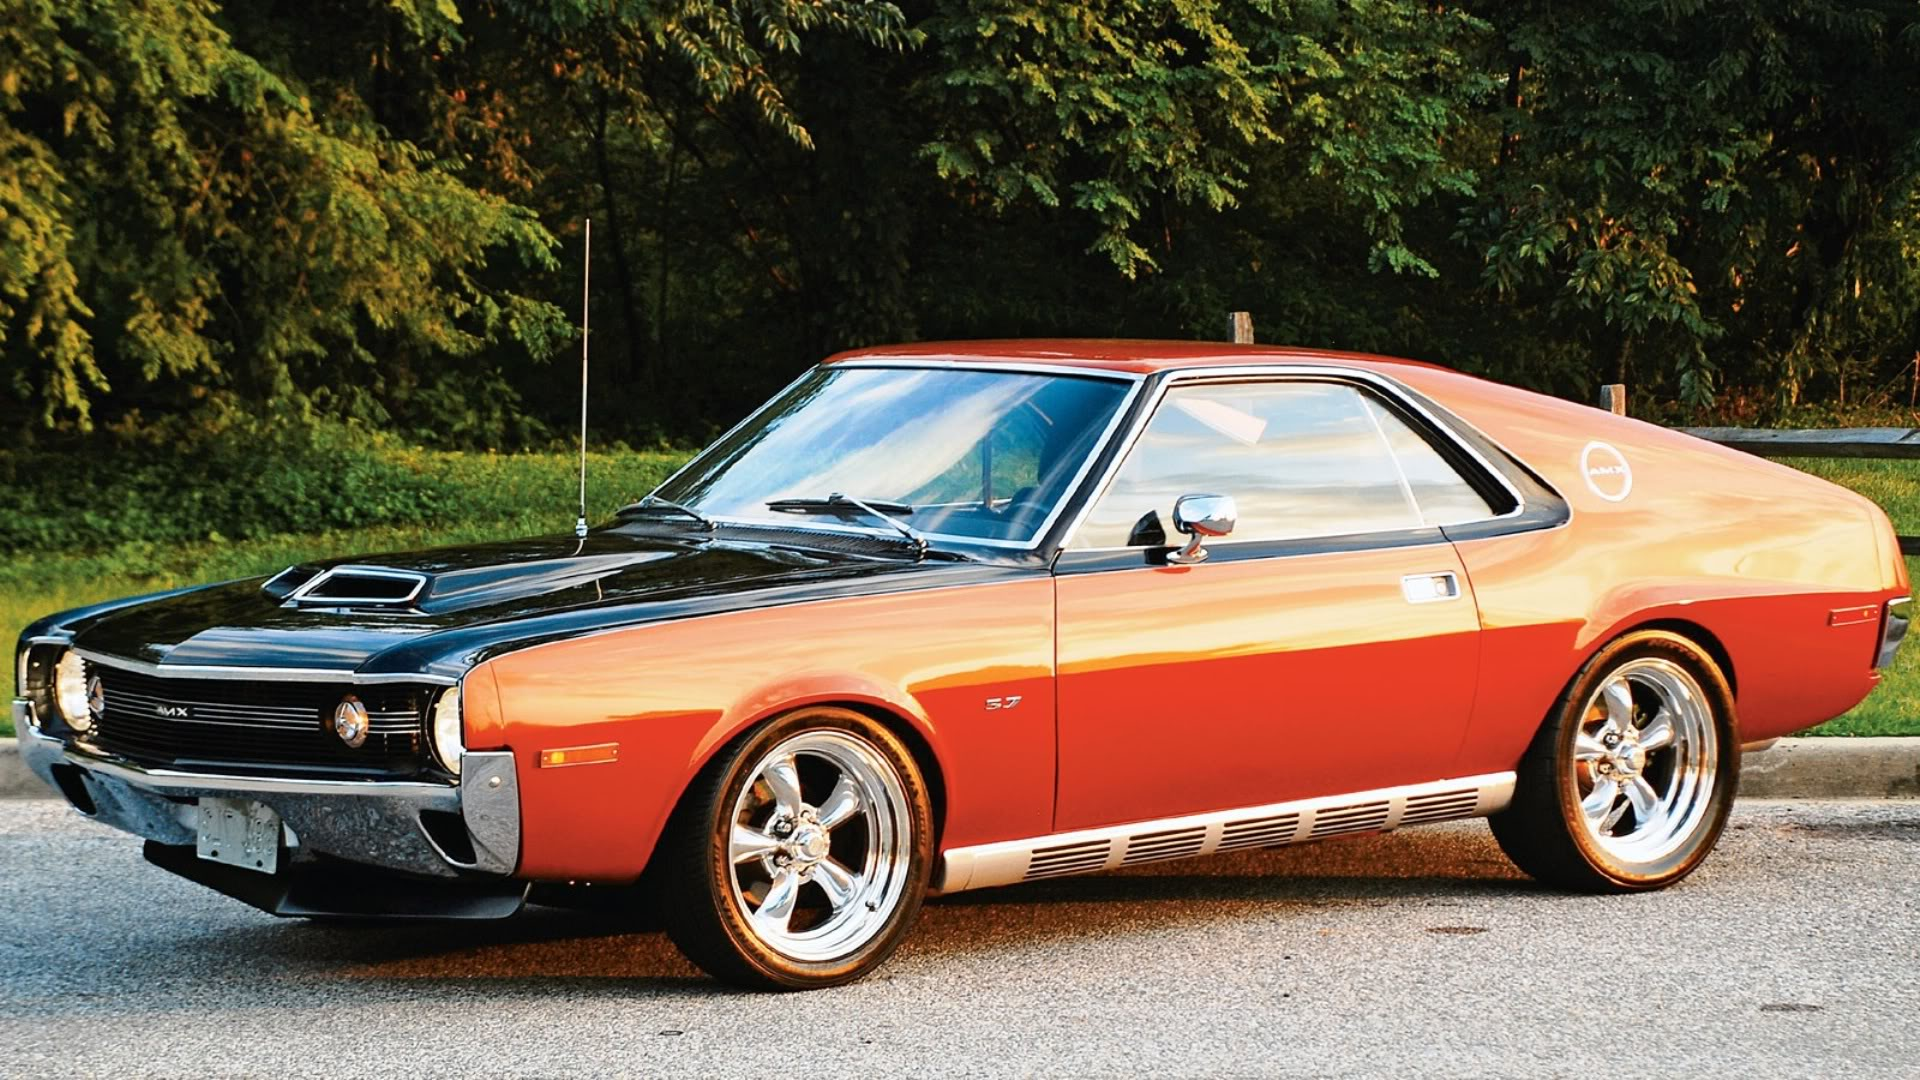 The Top 40 Classic Muscle Cars in History, Ranked - Page 8 of 41